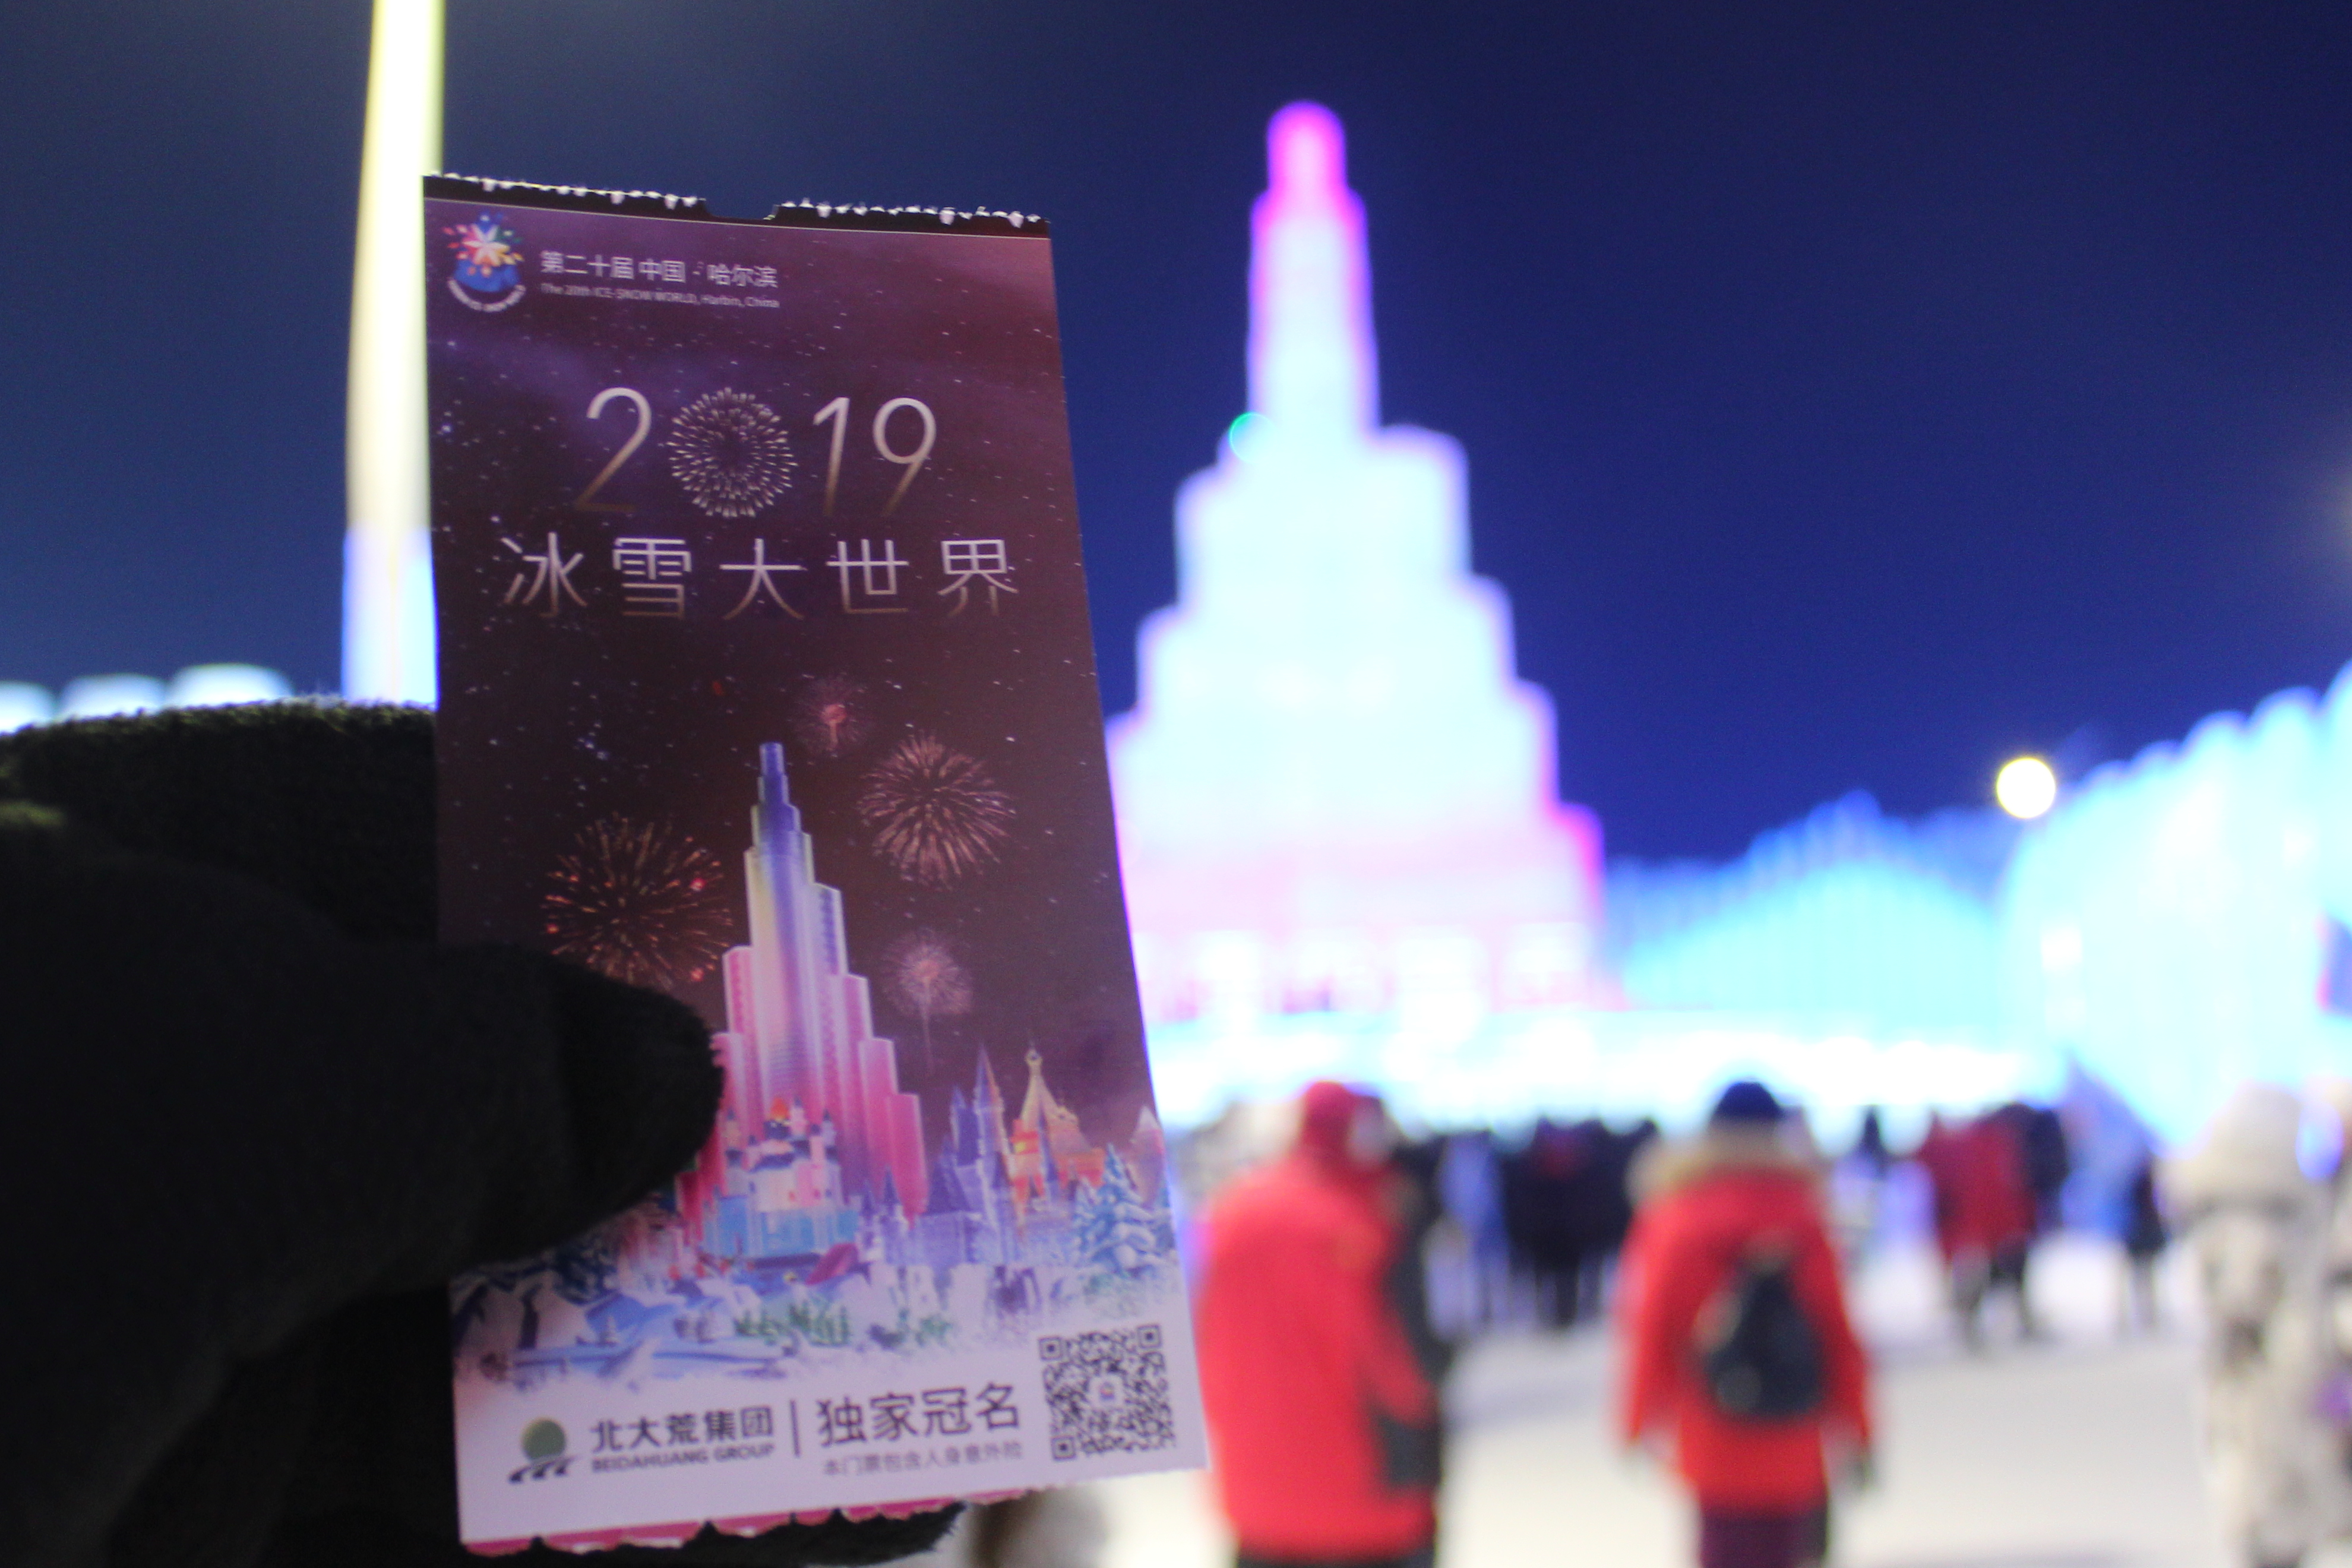 Ticket to Harbin's International Ice and Snow Festival